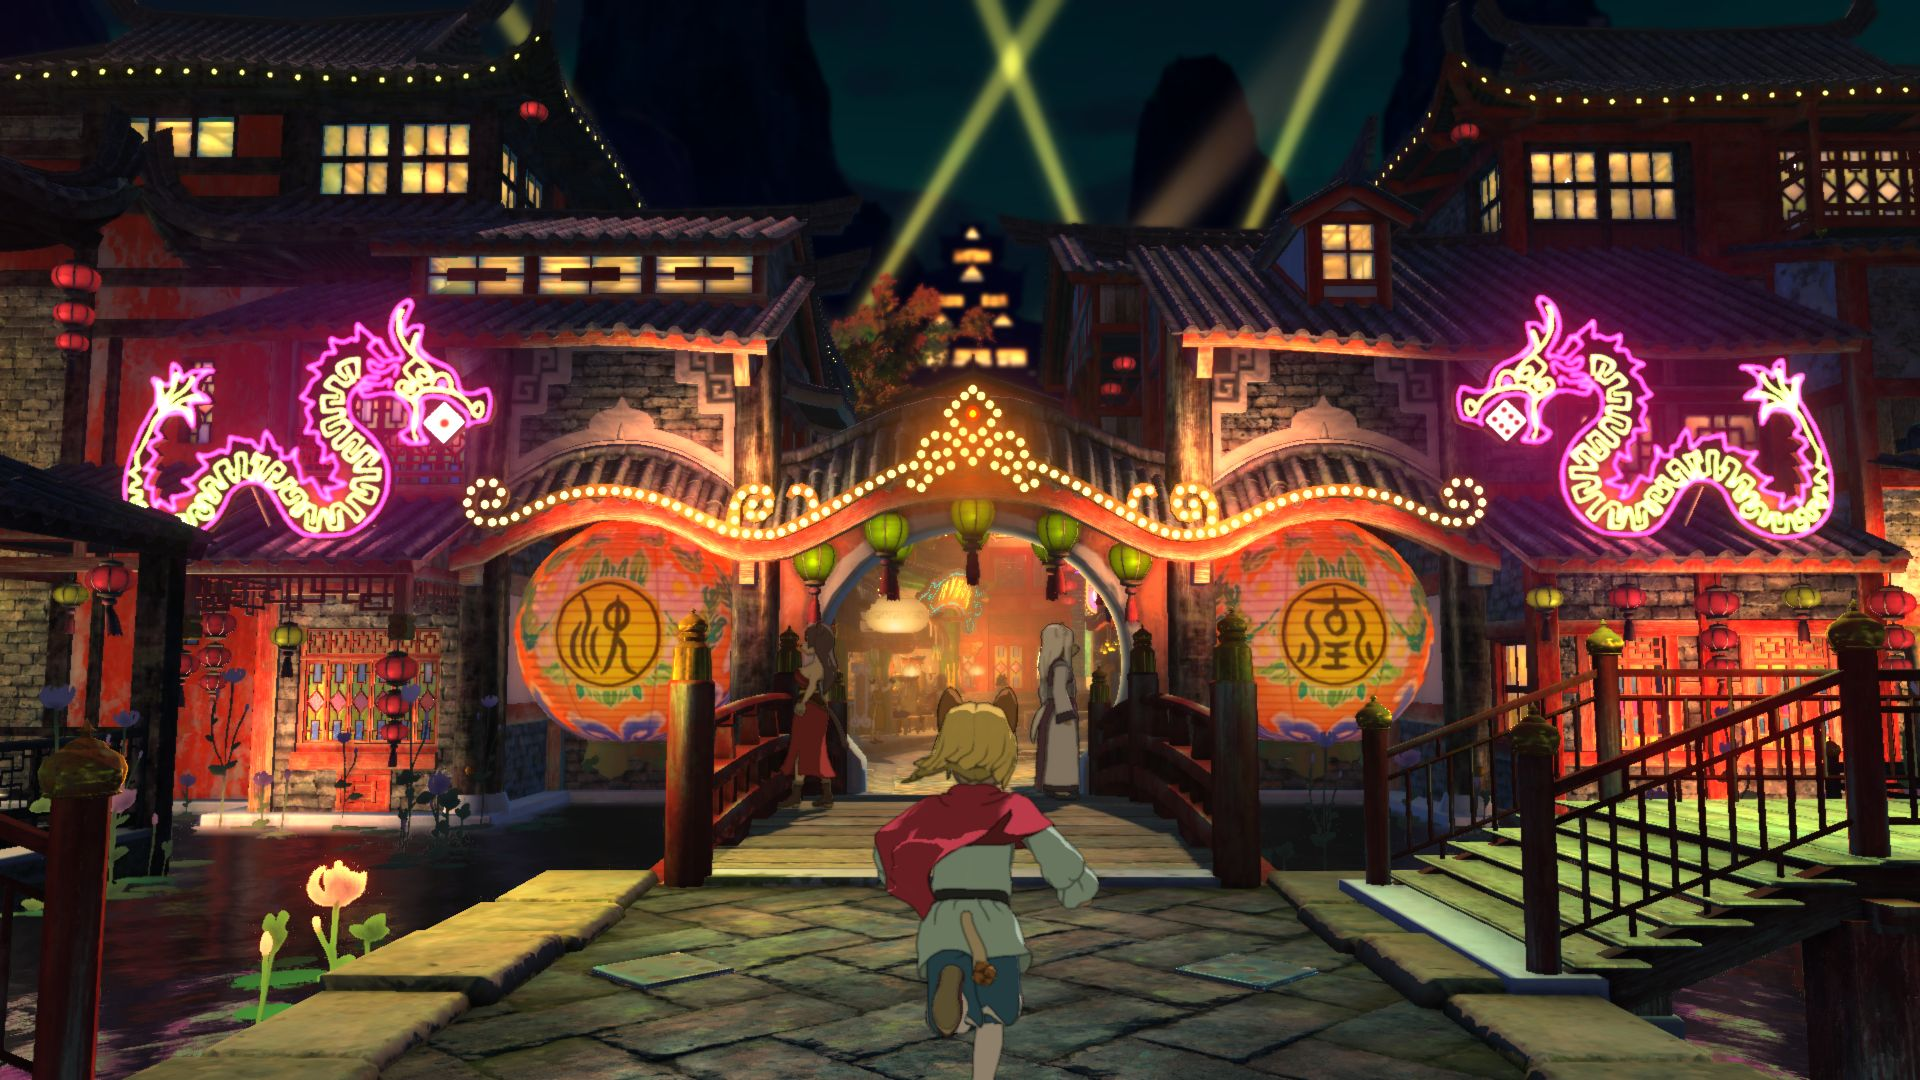 ni-no-kuni-ii-revenant-kingdom-screenshot